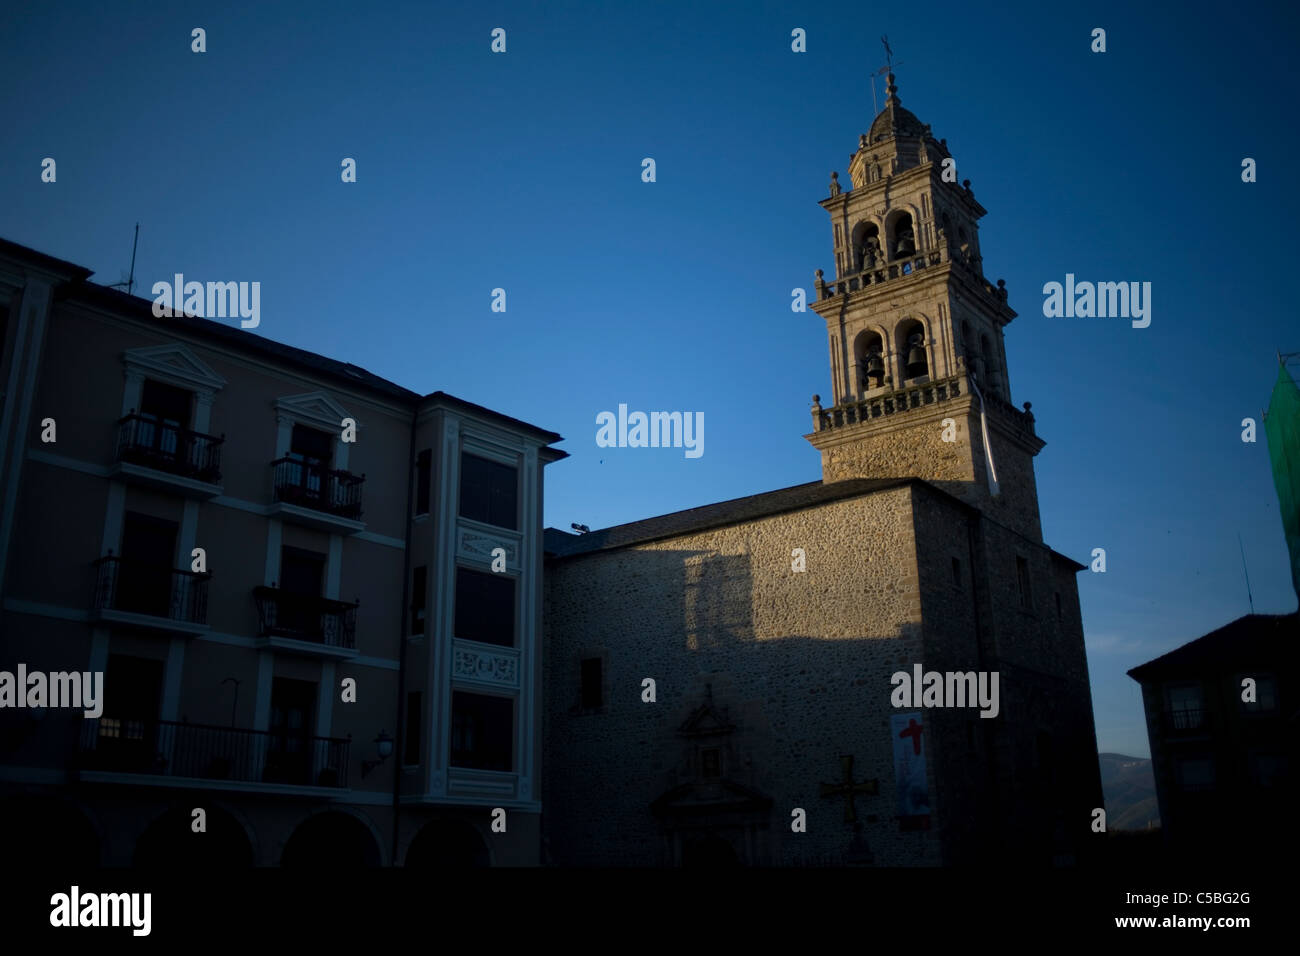 The bell tower of the Cathedral of Ponferrada, in the French Way of St. James Way, El Bierzo, Castilla y Leon, Spain. - Stock Image